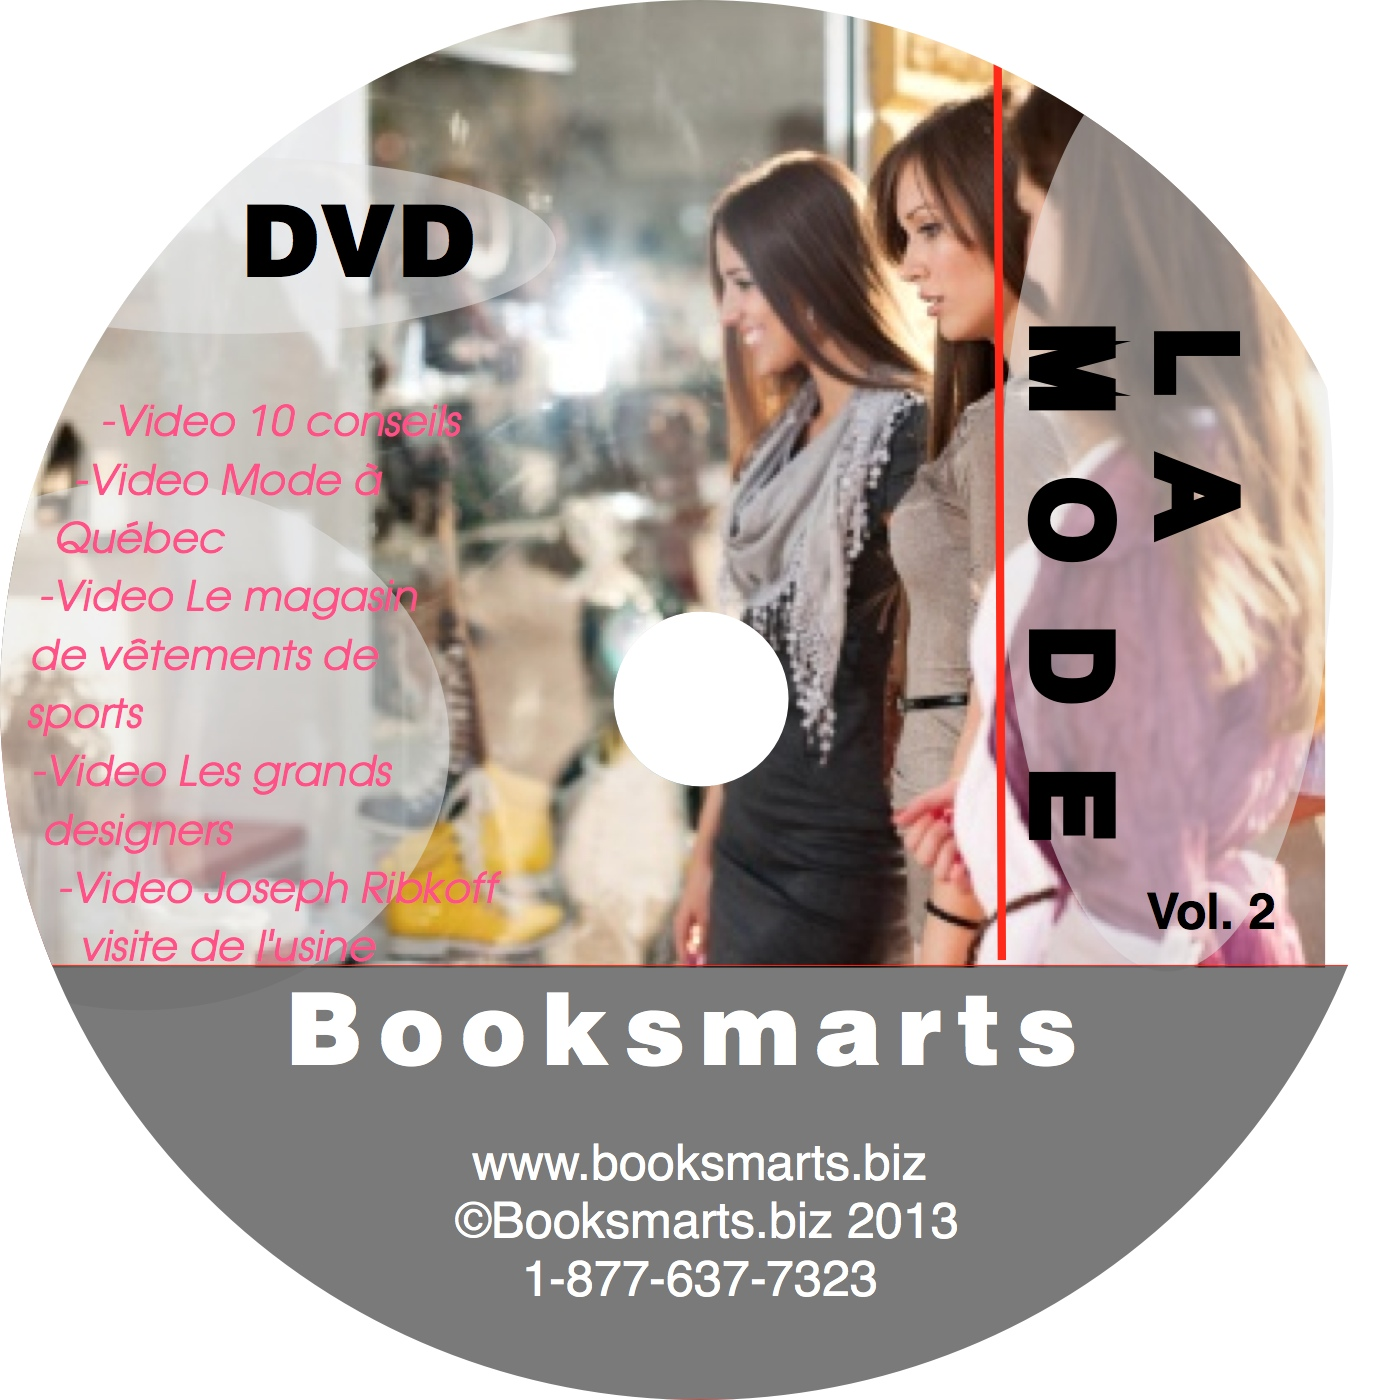 La Mode new DVD!